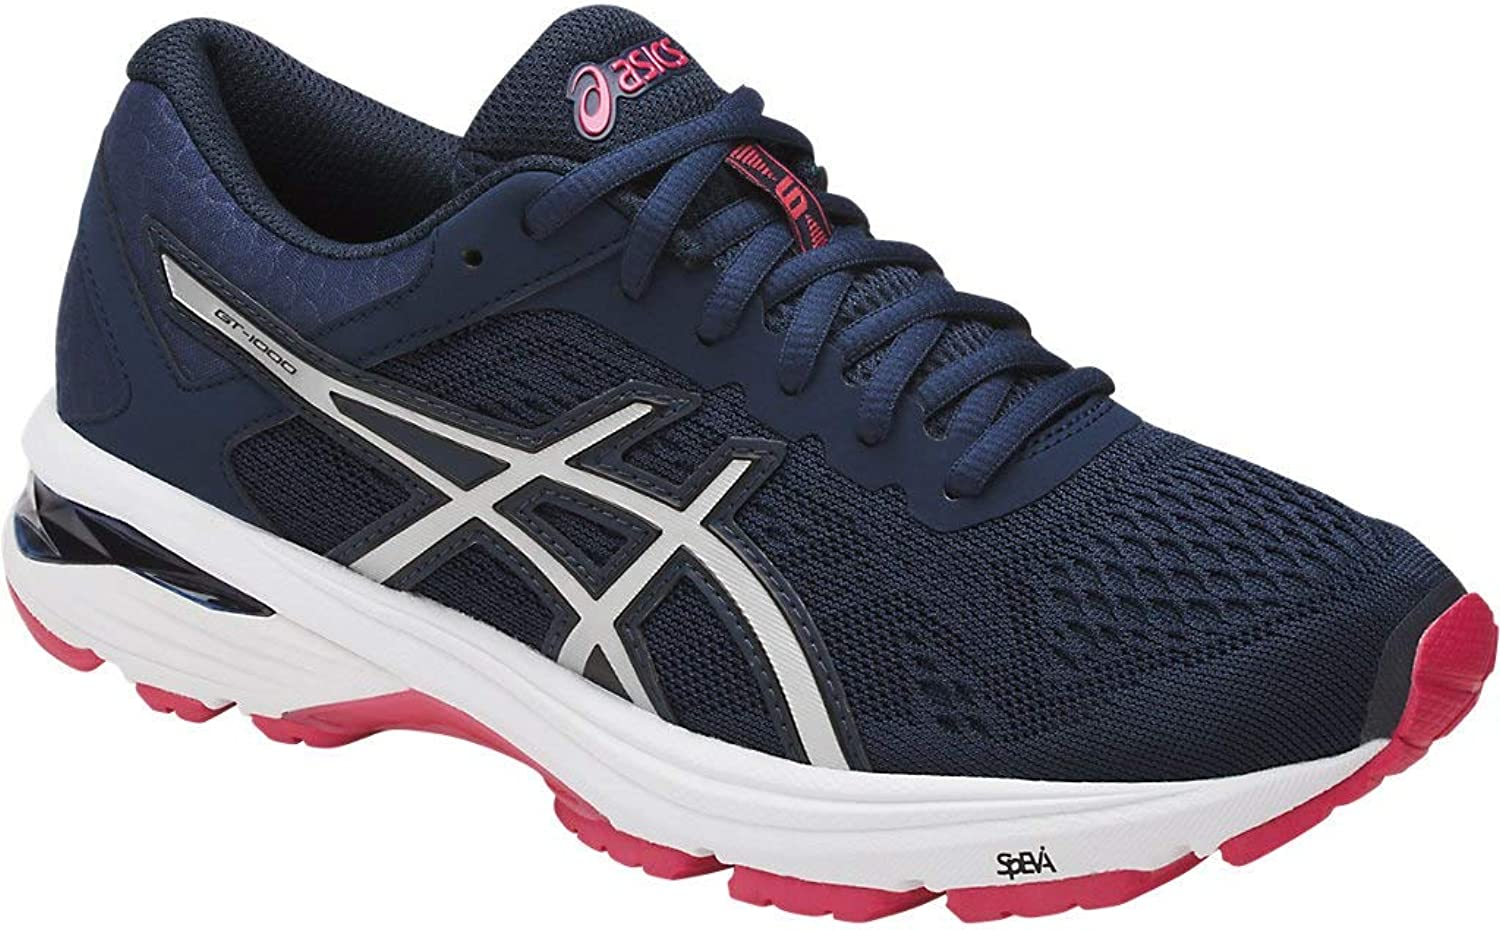 c43073972 ASICS Women's GT-1000 6 6 6 Running shoes, 7.5M, Insignia bluee Silver red  Red 6971e6